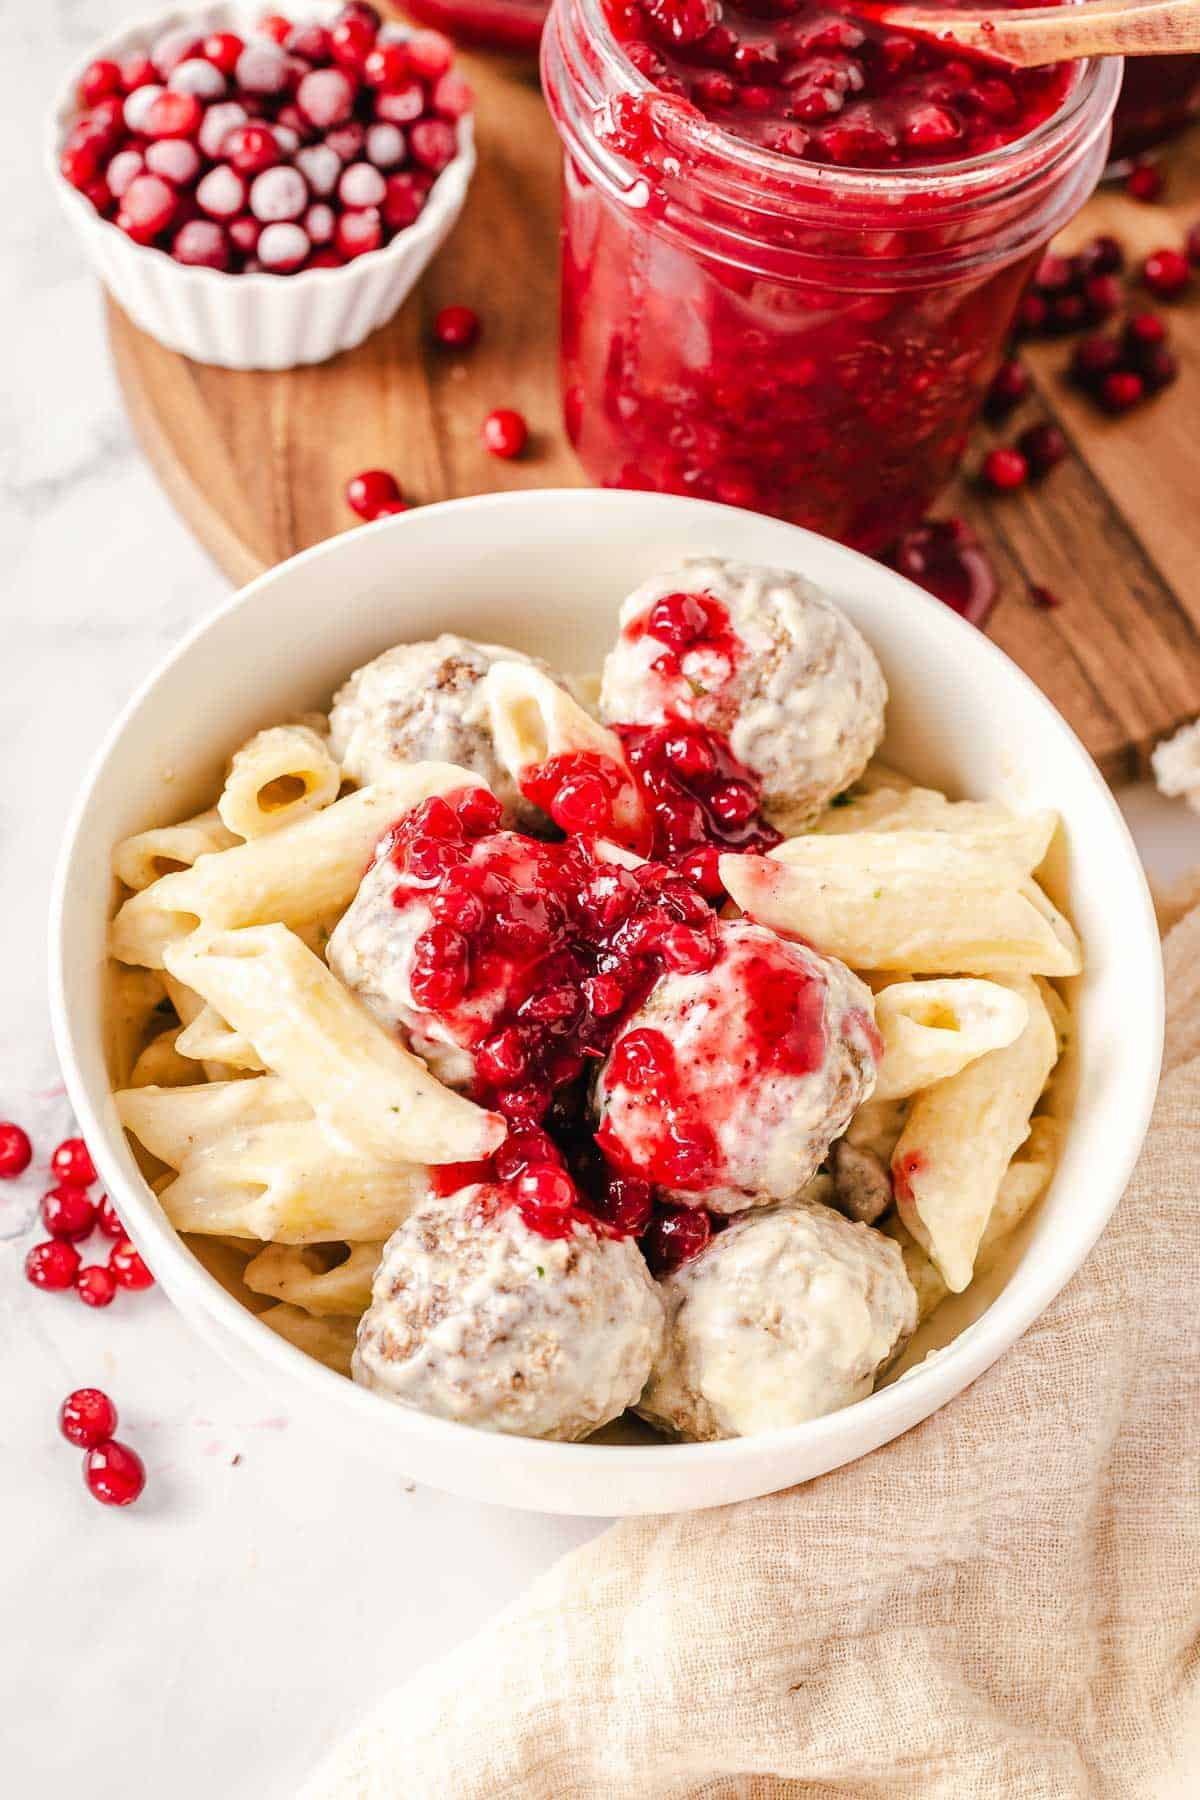 ikea meatballs with pasta and lingonberry sauce